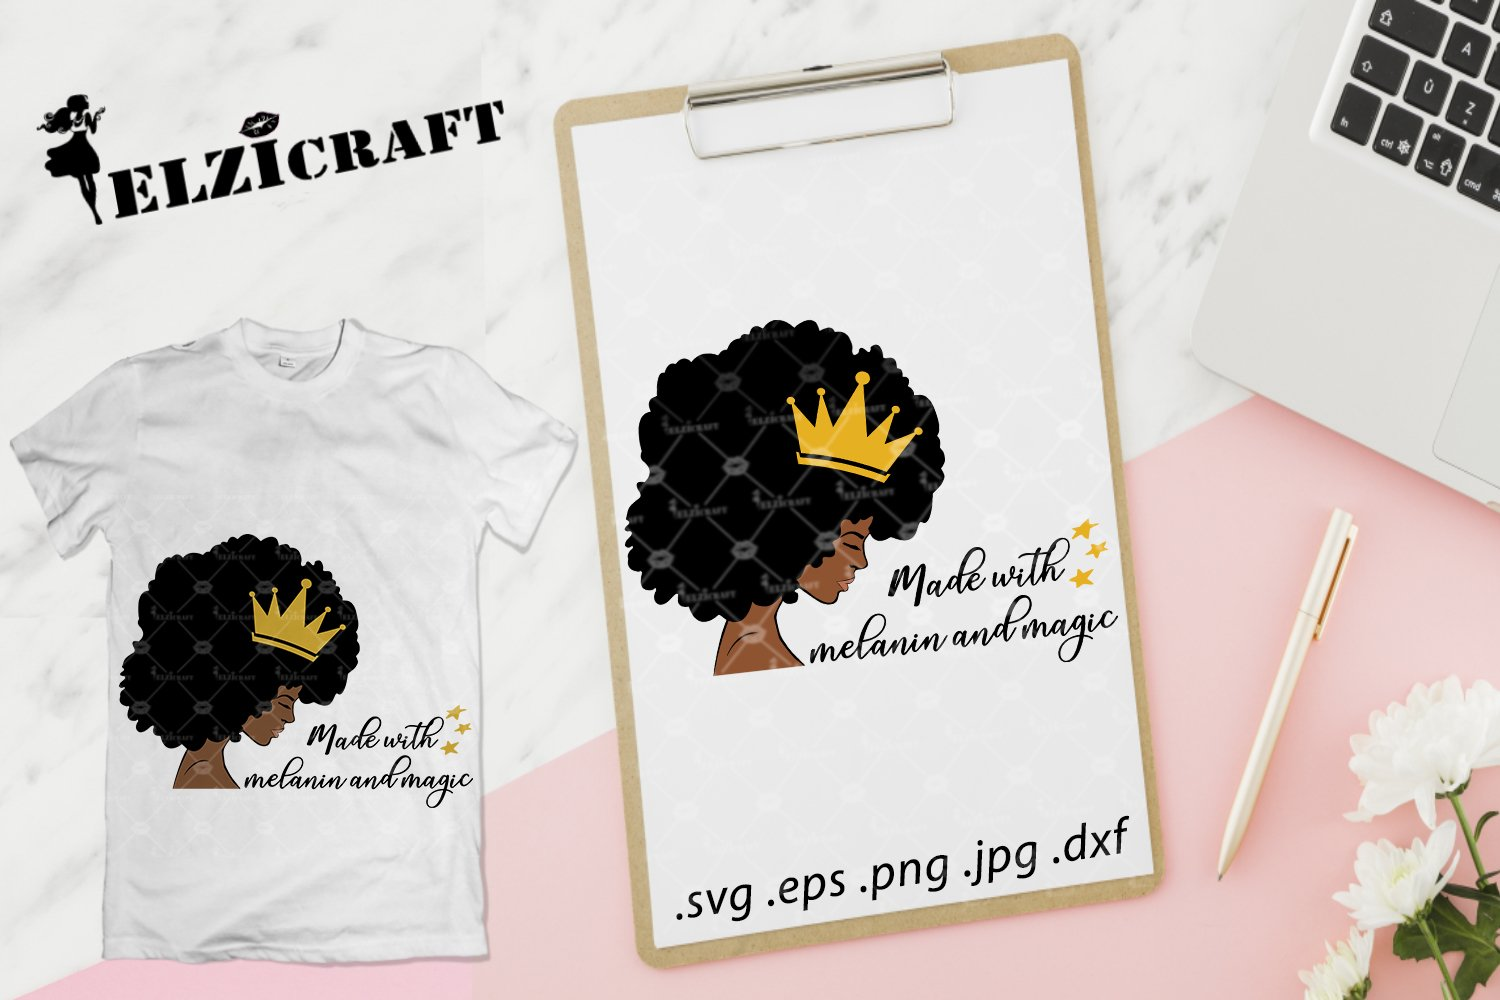 Afro Woman Melanin Poppin Made With Melanin And Magic Svg 320187 Svgs Design Bundles